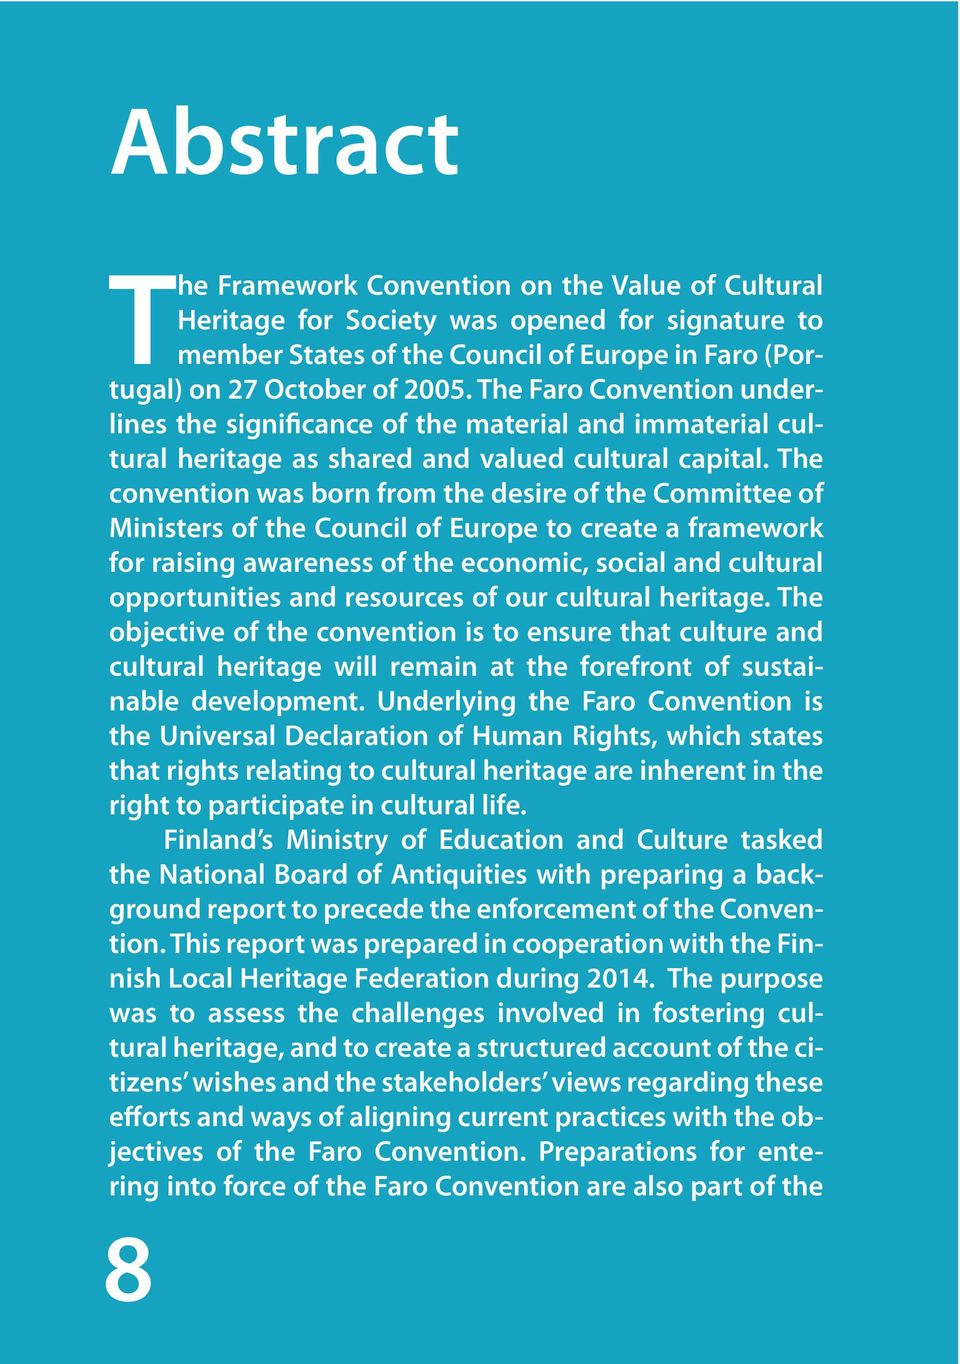 The convention was born from the desire of the Committee of Ministers of the Council of Europe to create a framework for raising awareness of the economic, social and cultural opportunities and